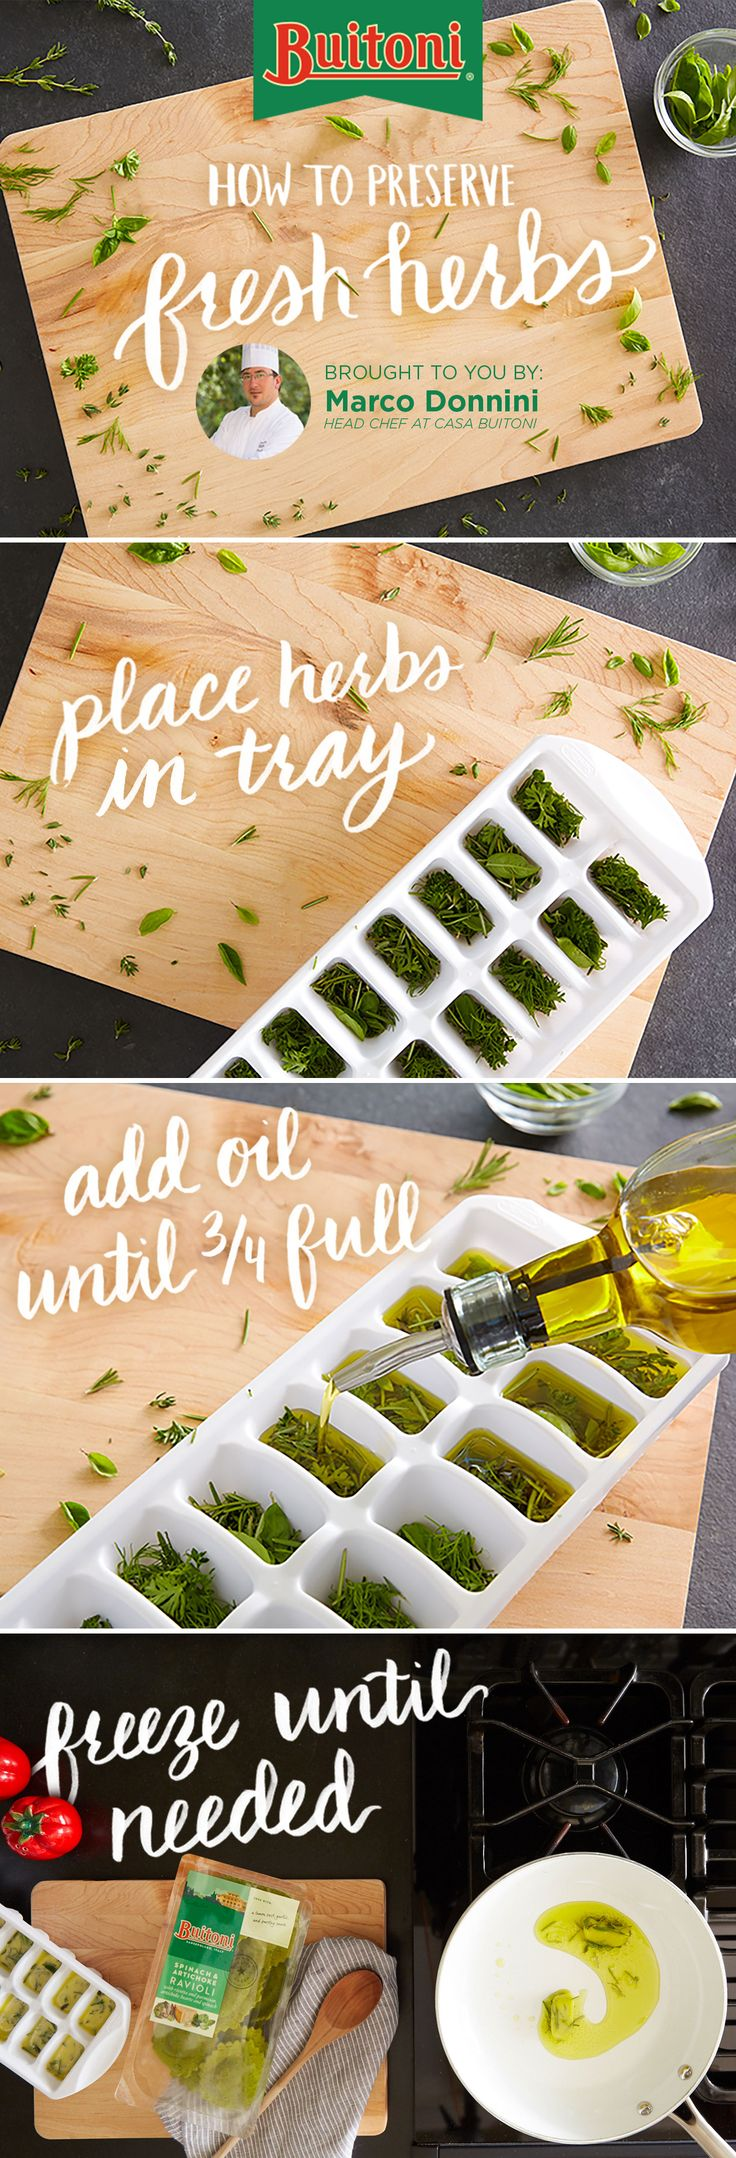 Buitoni's Chef Marco Donnini helps you get closer to dinner with an easy herb trick for capturing freshly made flavor.